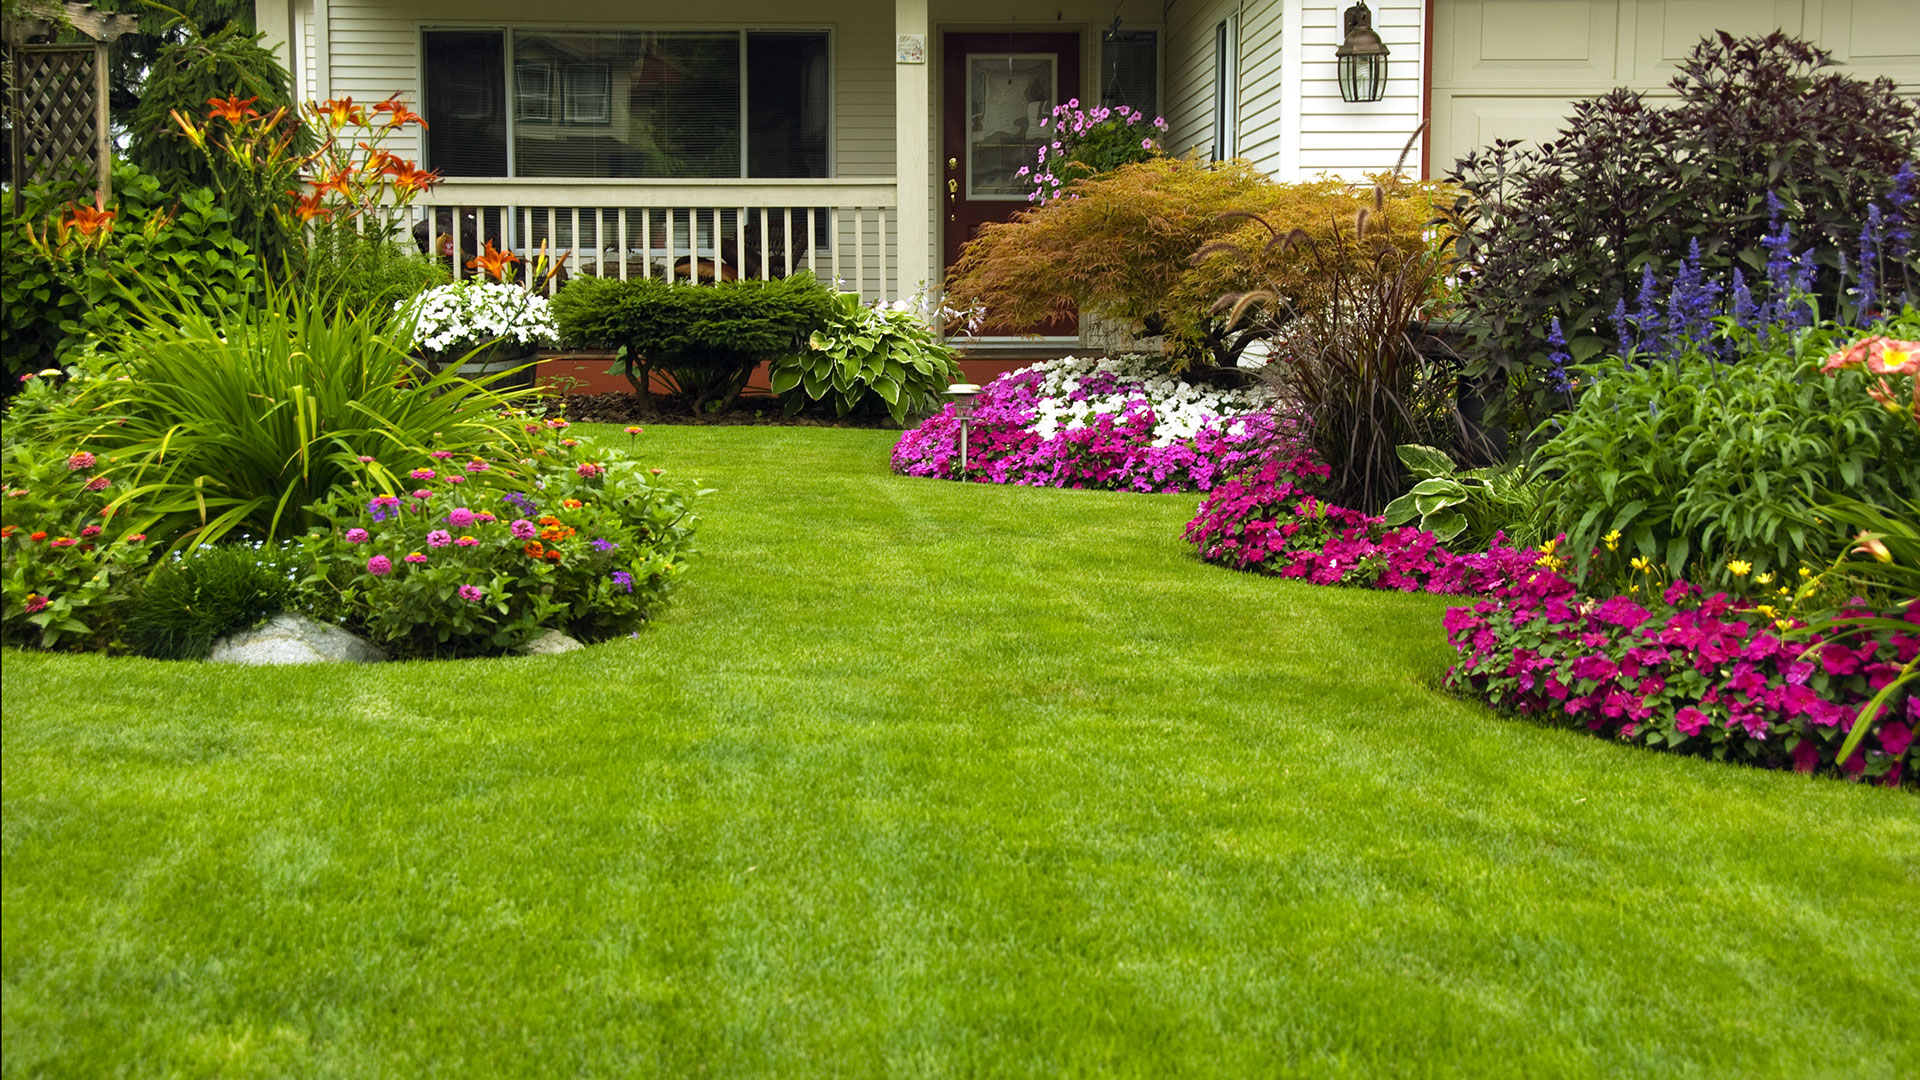 Chicago Lawn Care